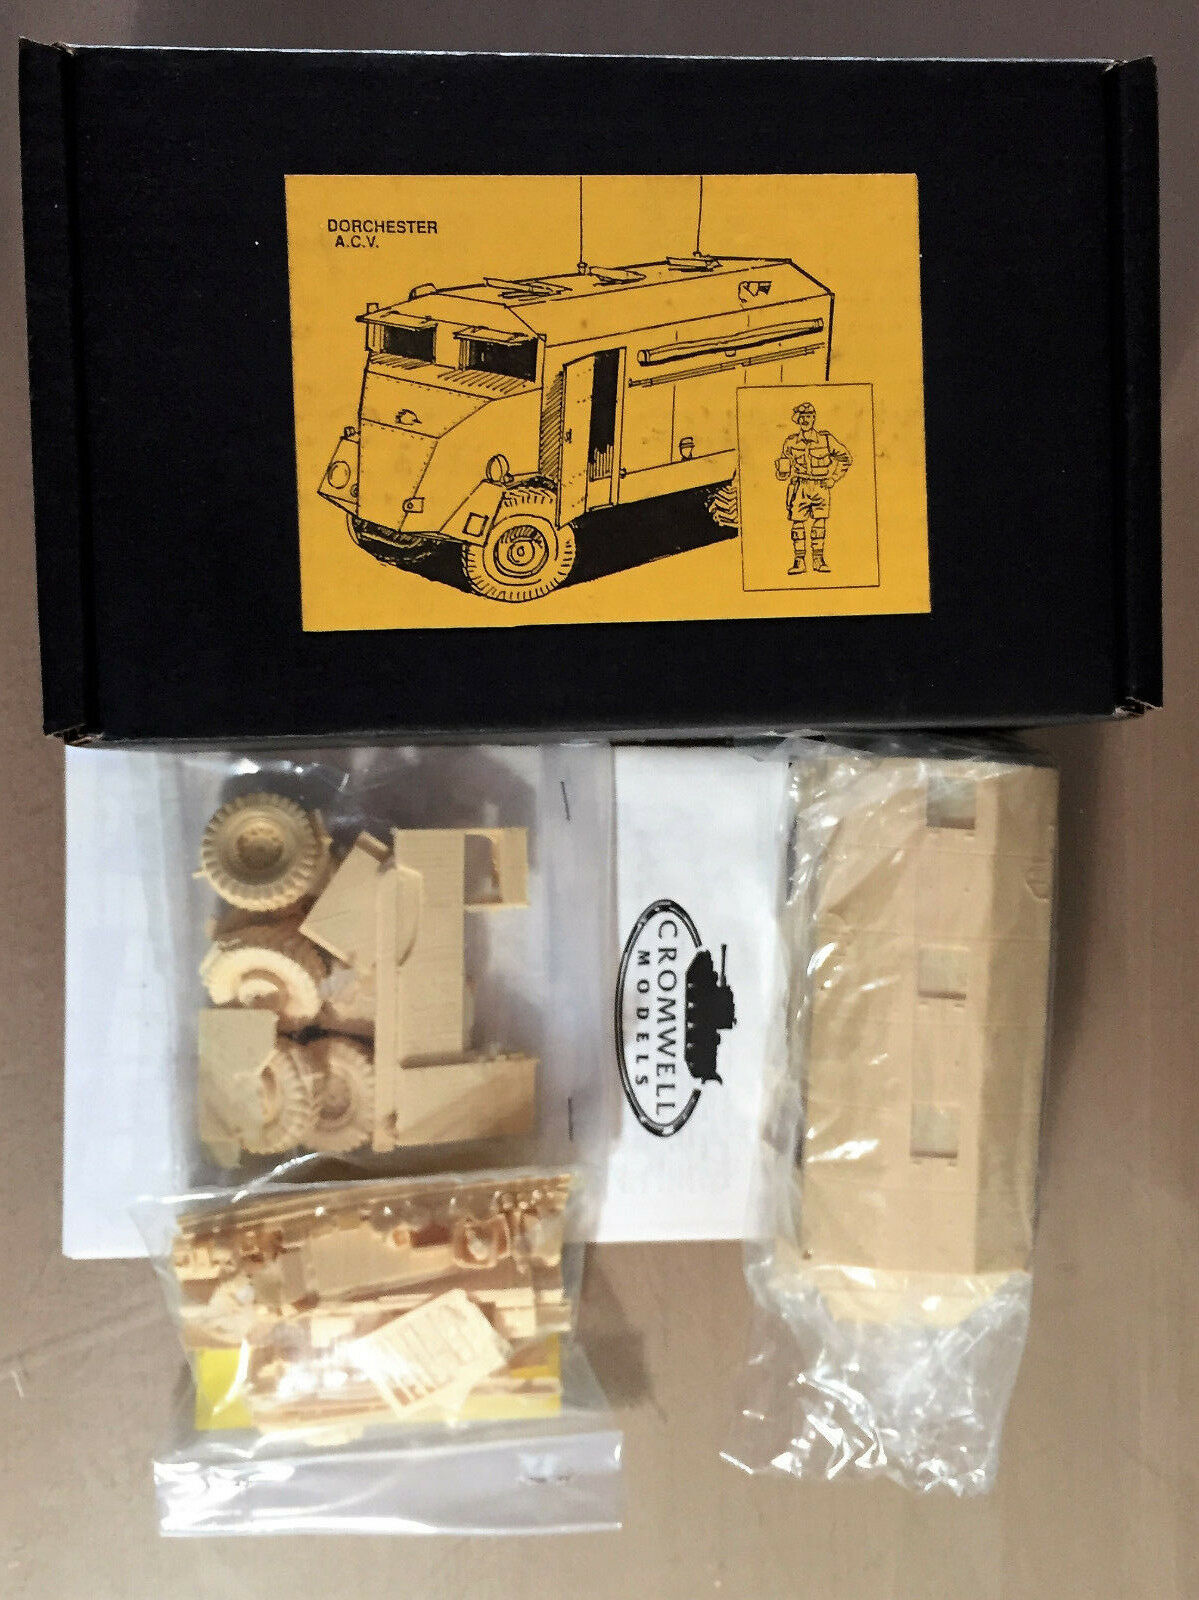 CROMWELL PRODUCTIONS - DORCHESTER A.C.V. BRITISH WWII - 1 35 RESIN KIT